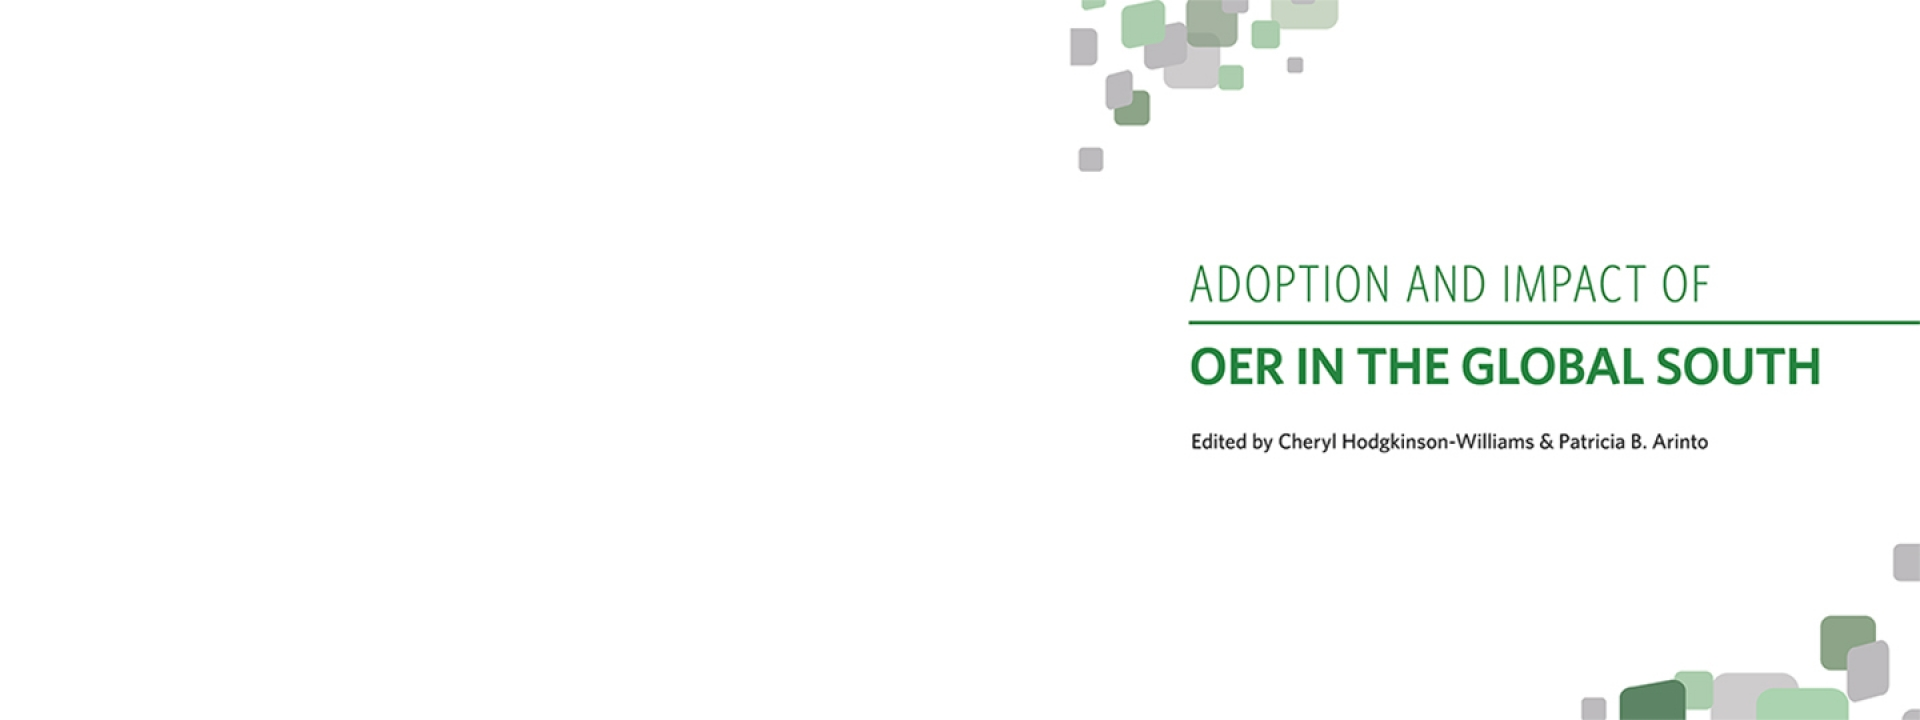 Adoption and Impact of OER in the Global South